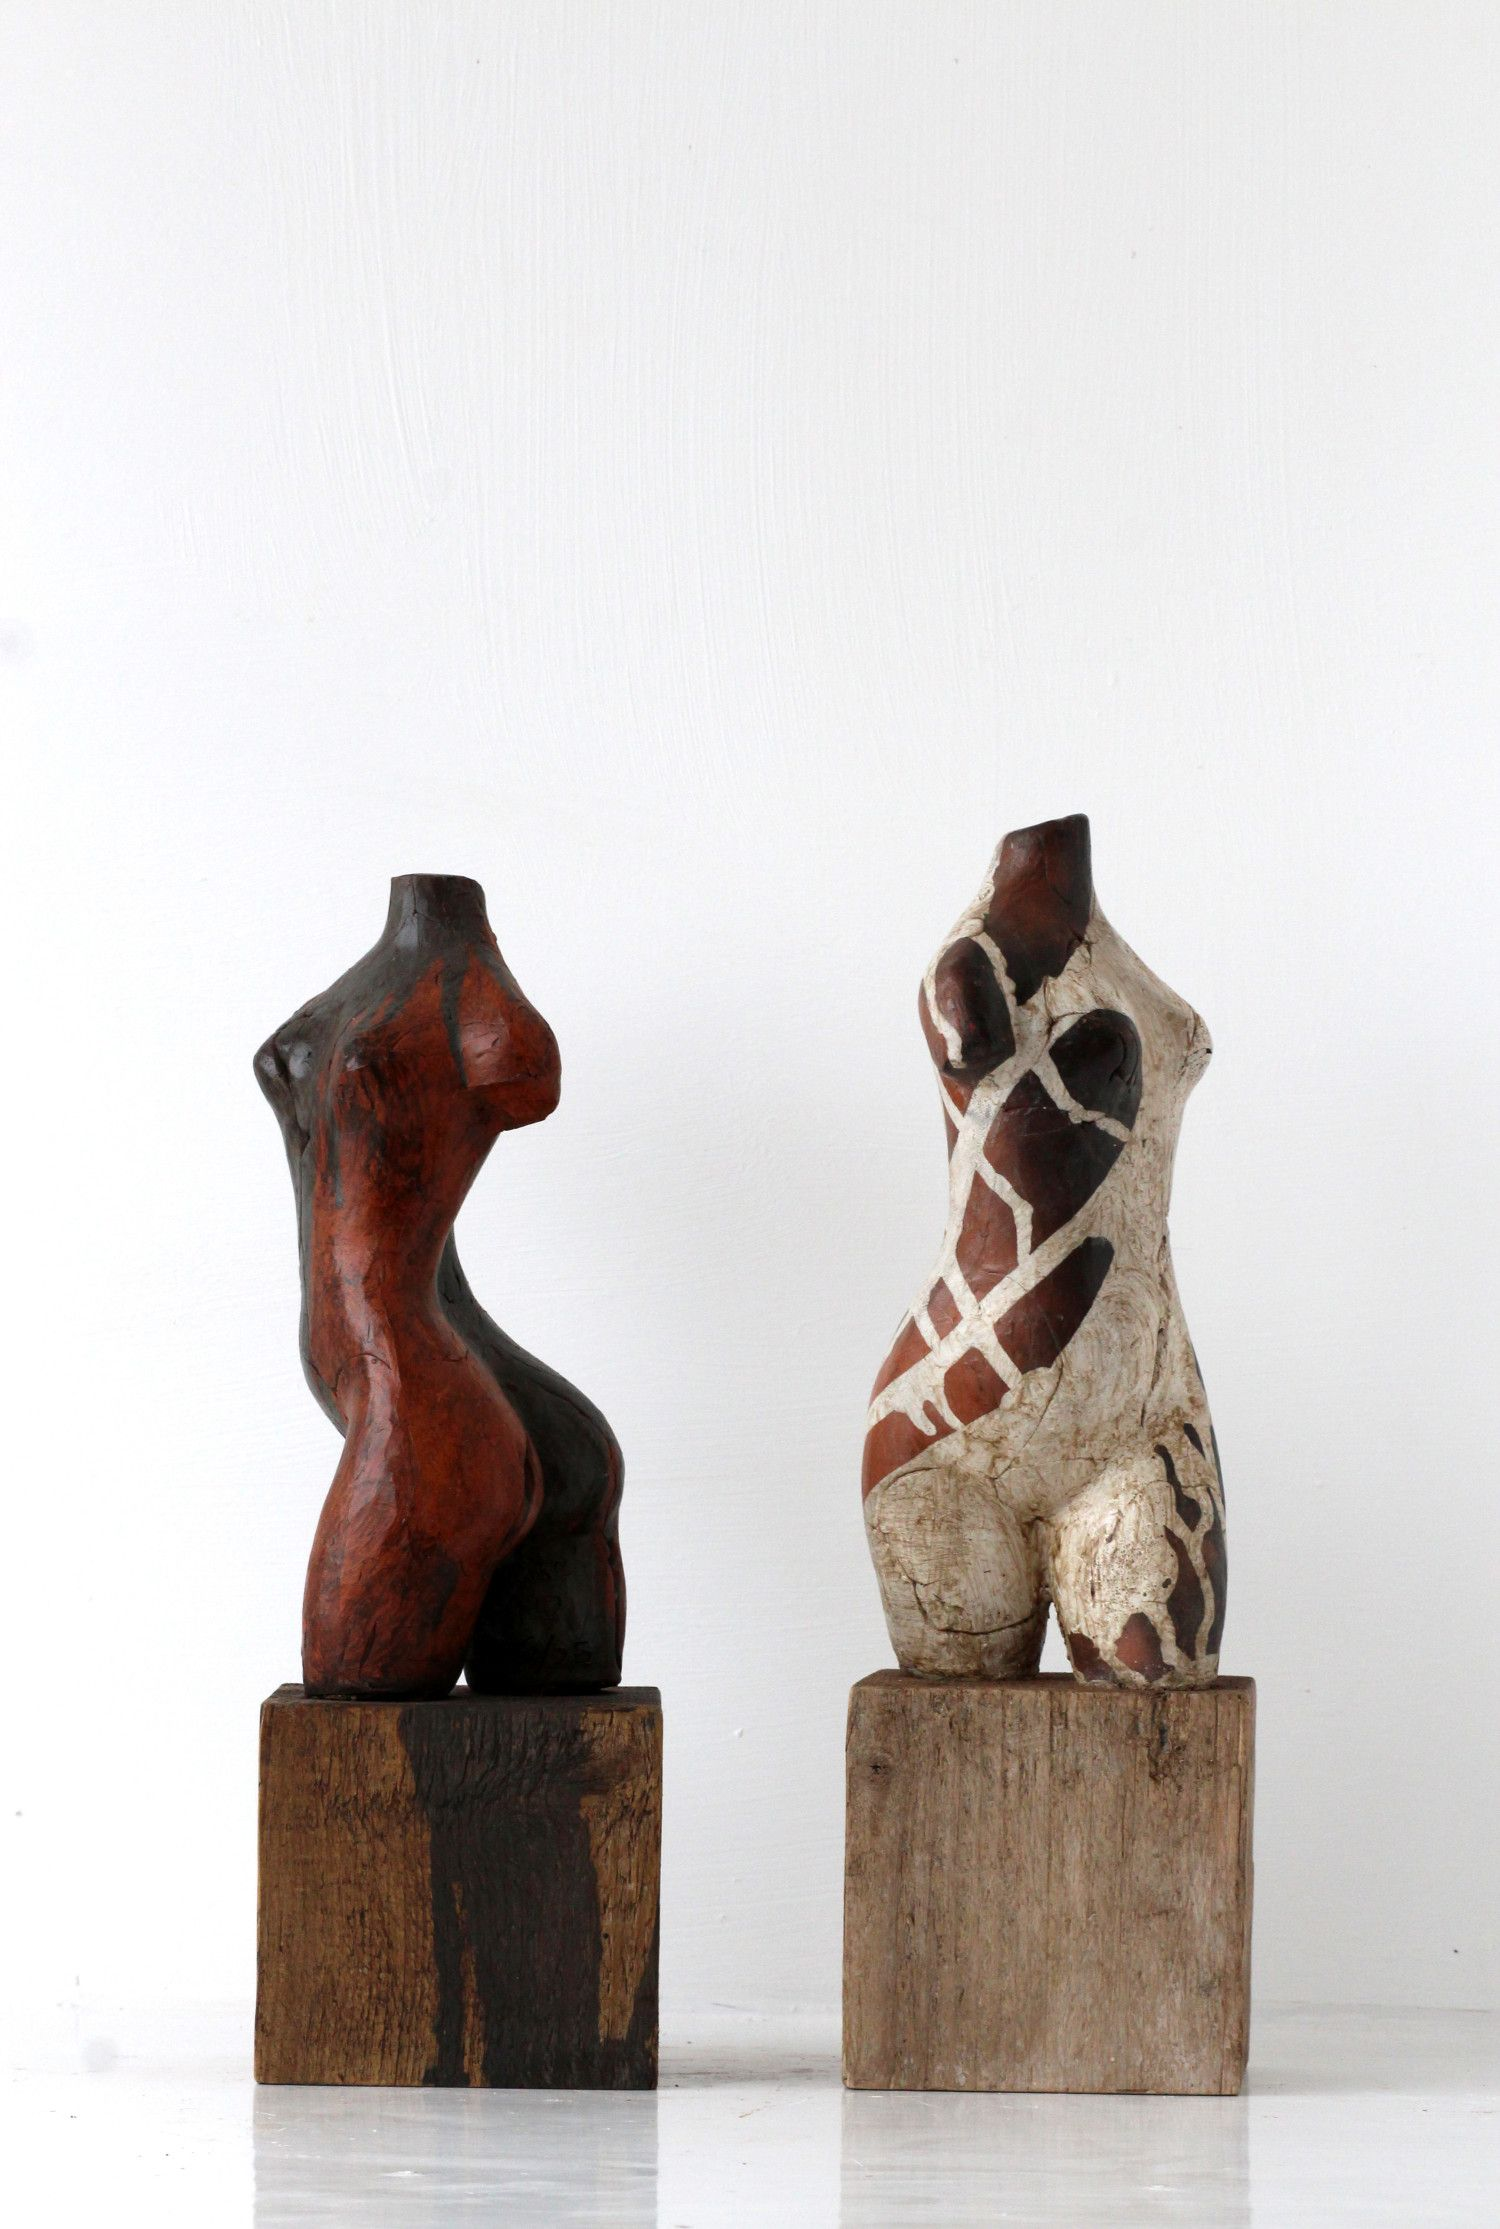 Sophie Howard sculptures - upcoming artist at the Square Club.